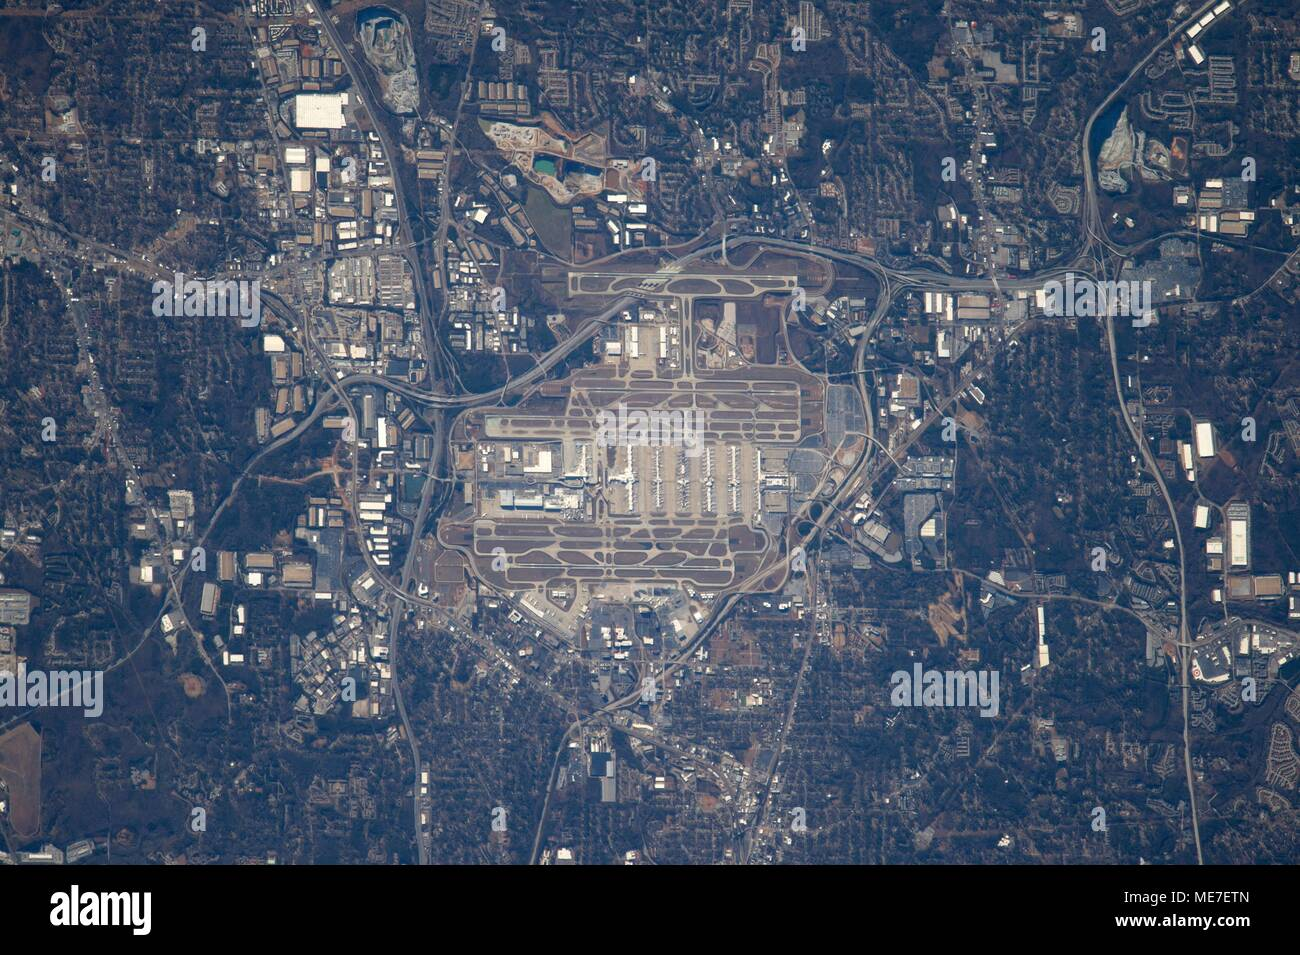 A satellite view of the Hartsfield-Jackson Airport in Atlanta, Georgia as seen from the NASA International Space Station January 28, 2017 in Earth orbit.    (photo by NASA via Planetpix) - Stock Image